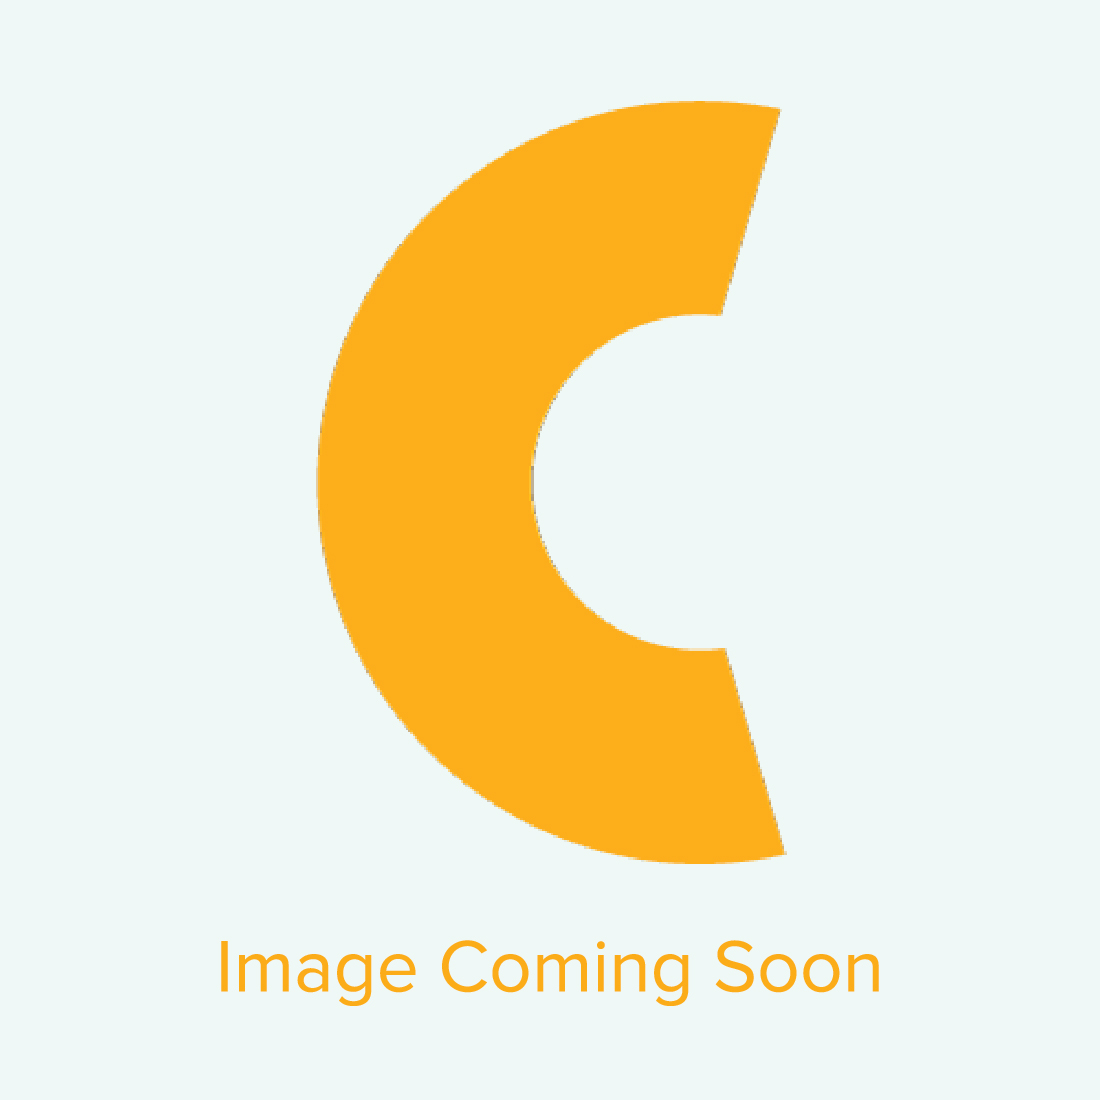 Kit - Hix Hobby Lite Swing Away Heat Press, Sublimation Marker Set & Ornaments